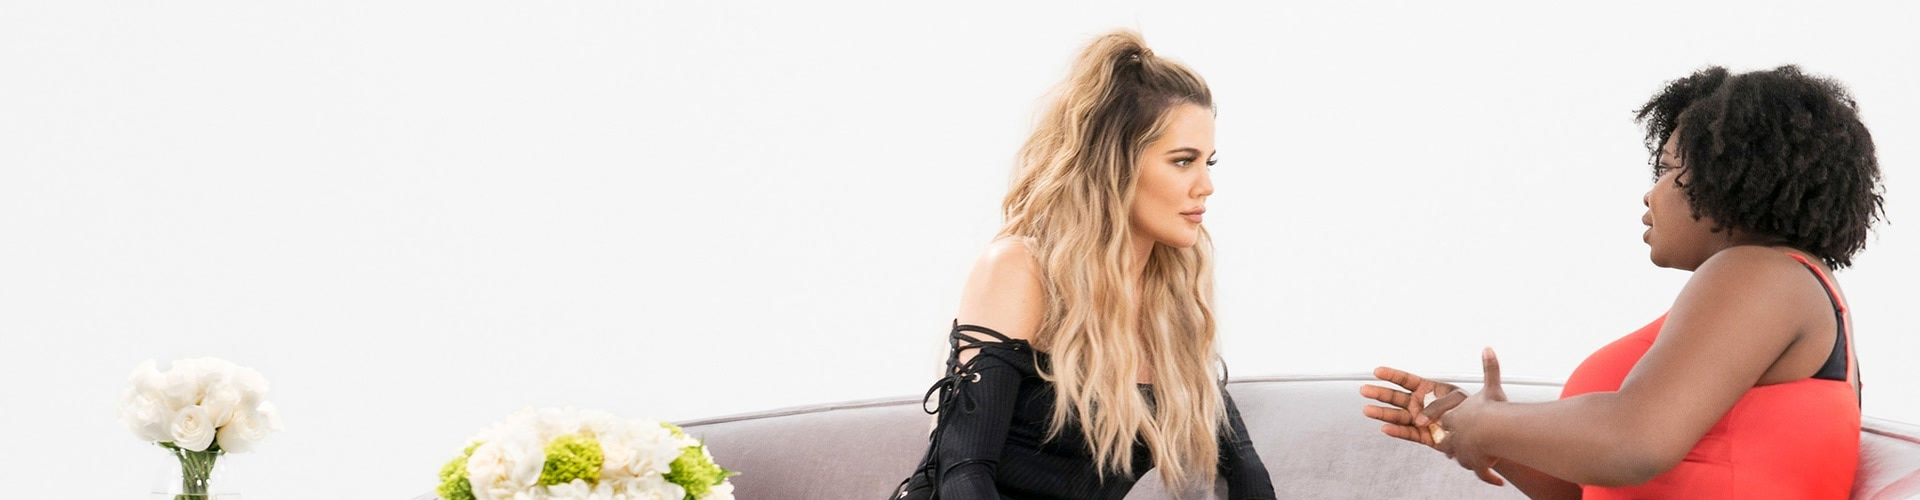 Watch Revenge Body with Khloé Kardashian - Specials Online